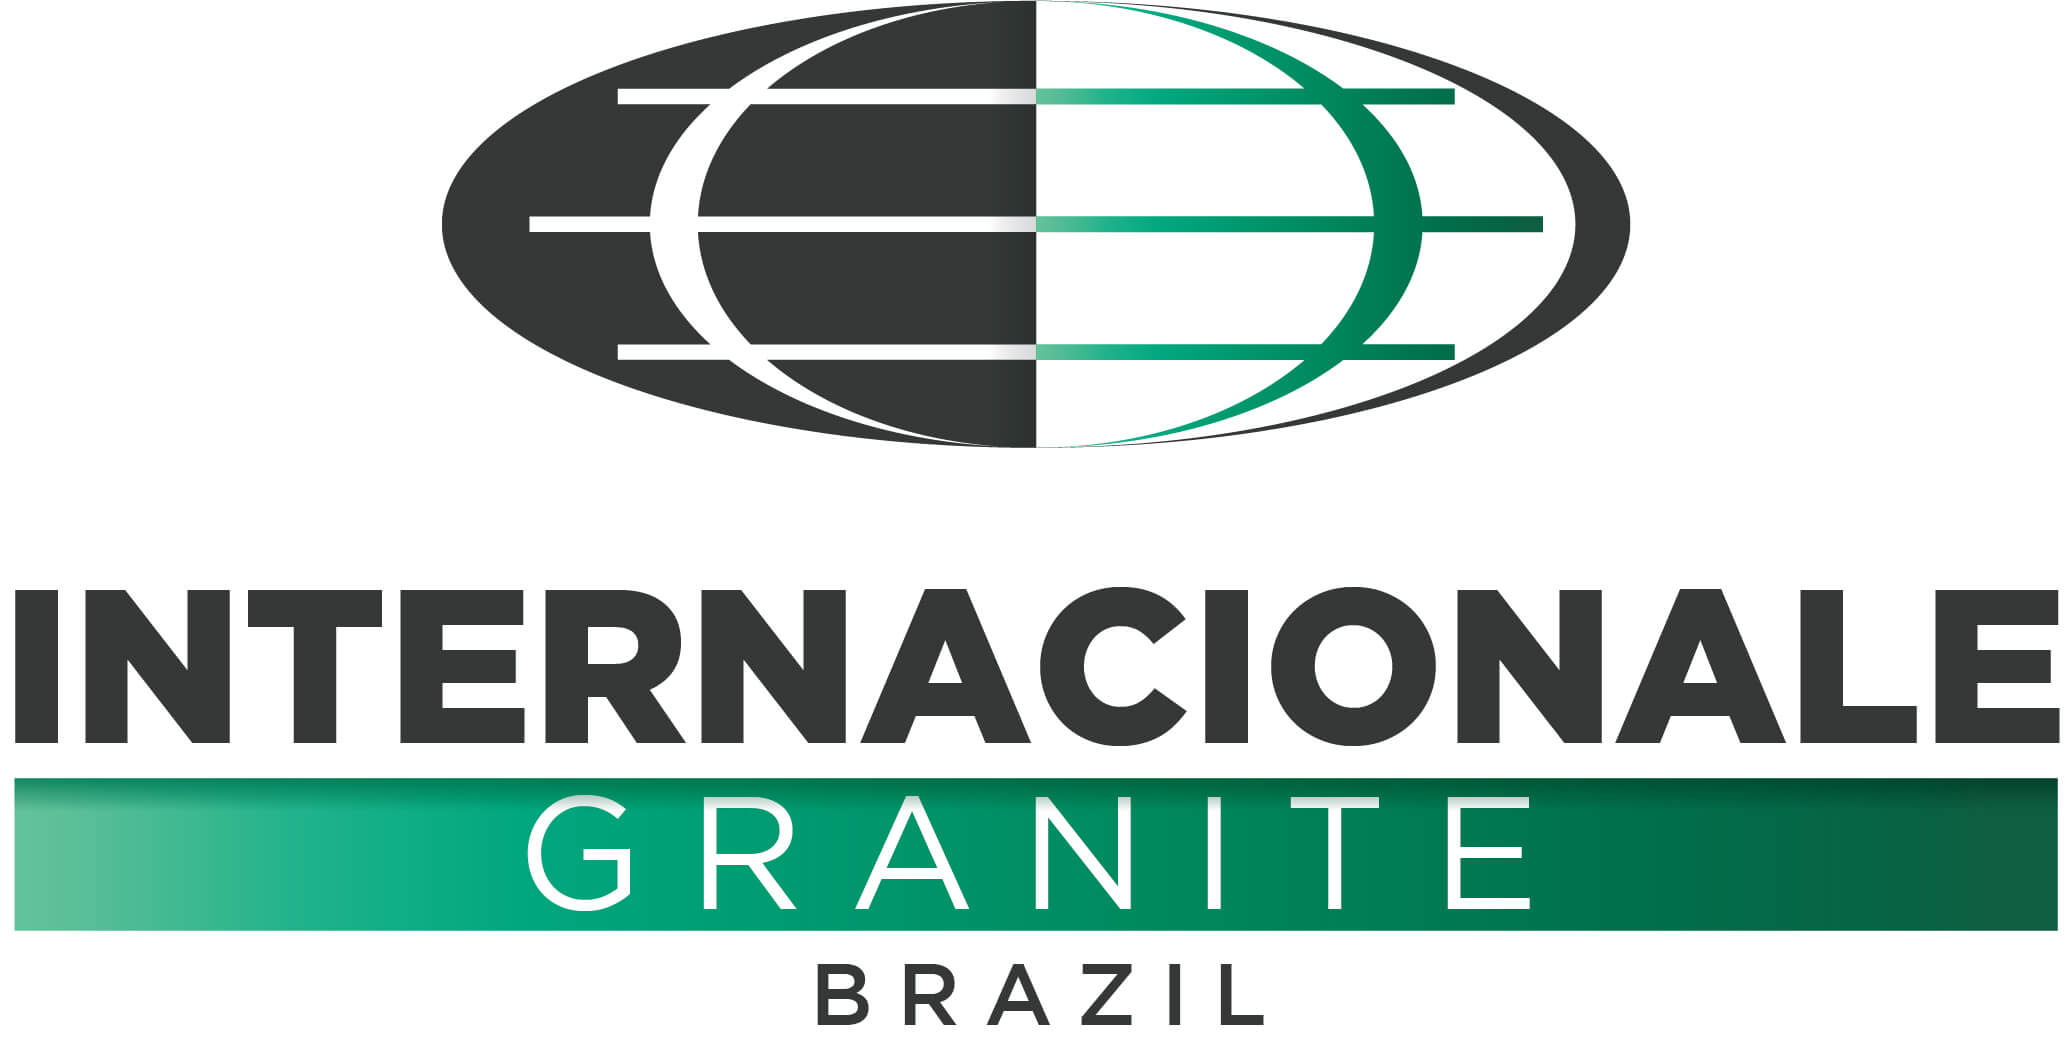 Internacionale Granite LTDA